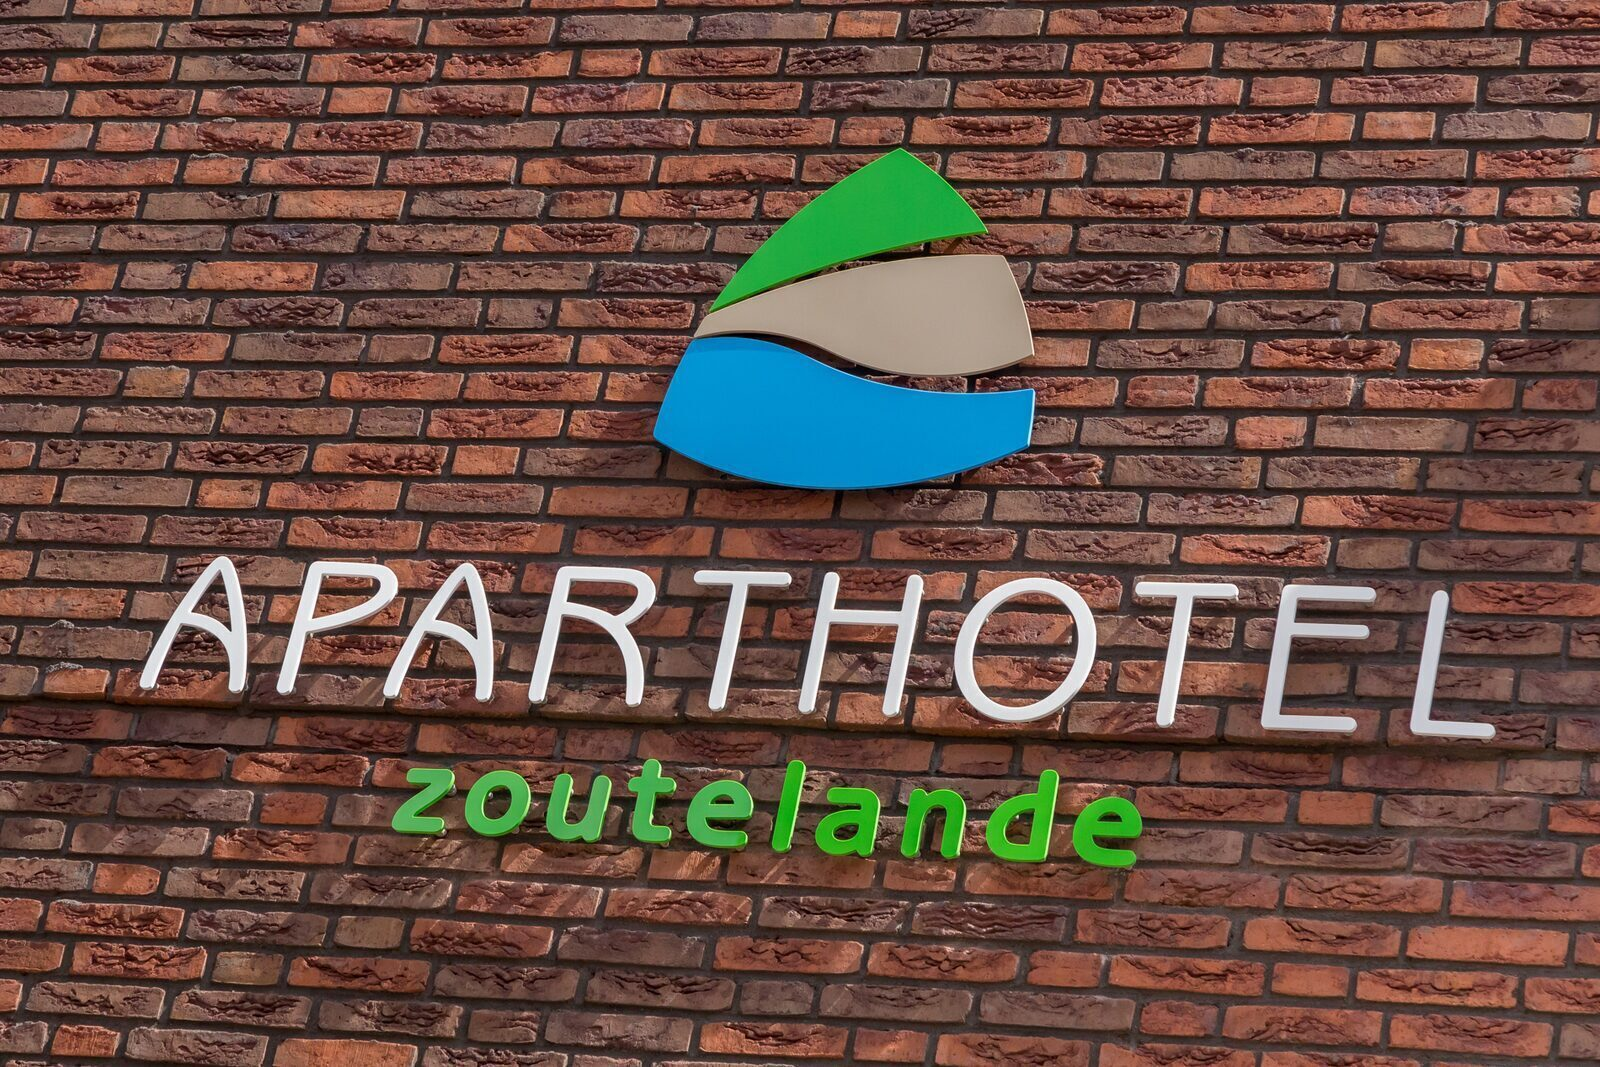 Luxuriöses Appartement für 3 Personen | Zoutelande